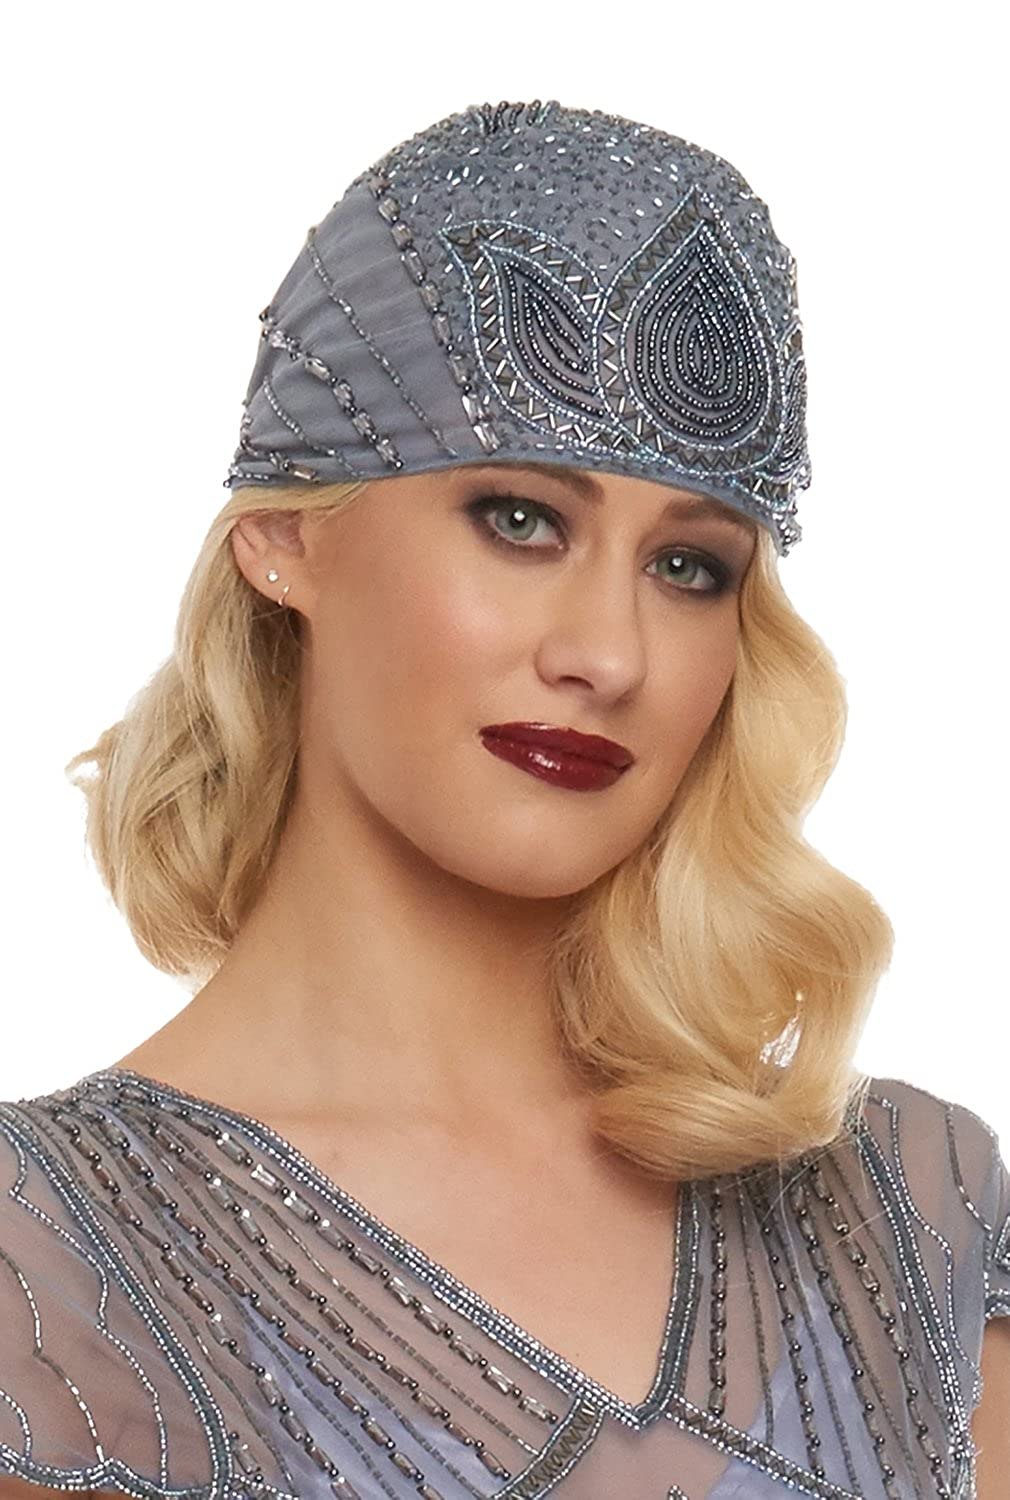 1920s Accessories | Great Gatsby Accessories Guide Lulu Vintage Inspired Flapper Cap in Lilac $33.03 AT vintagedancer.com